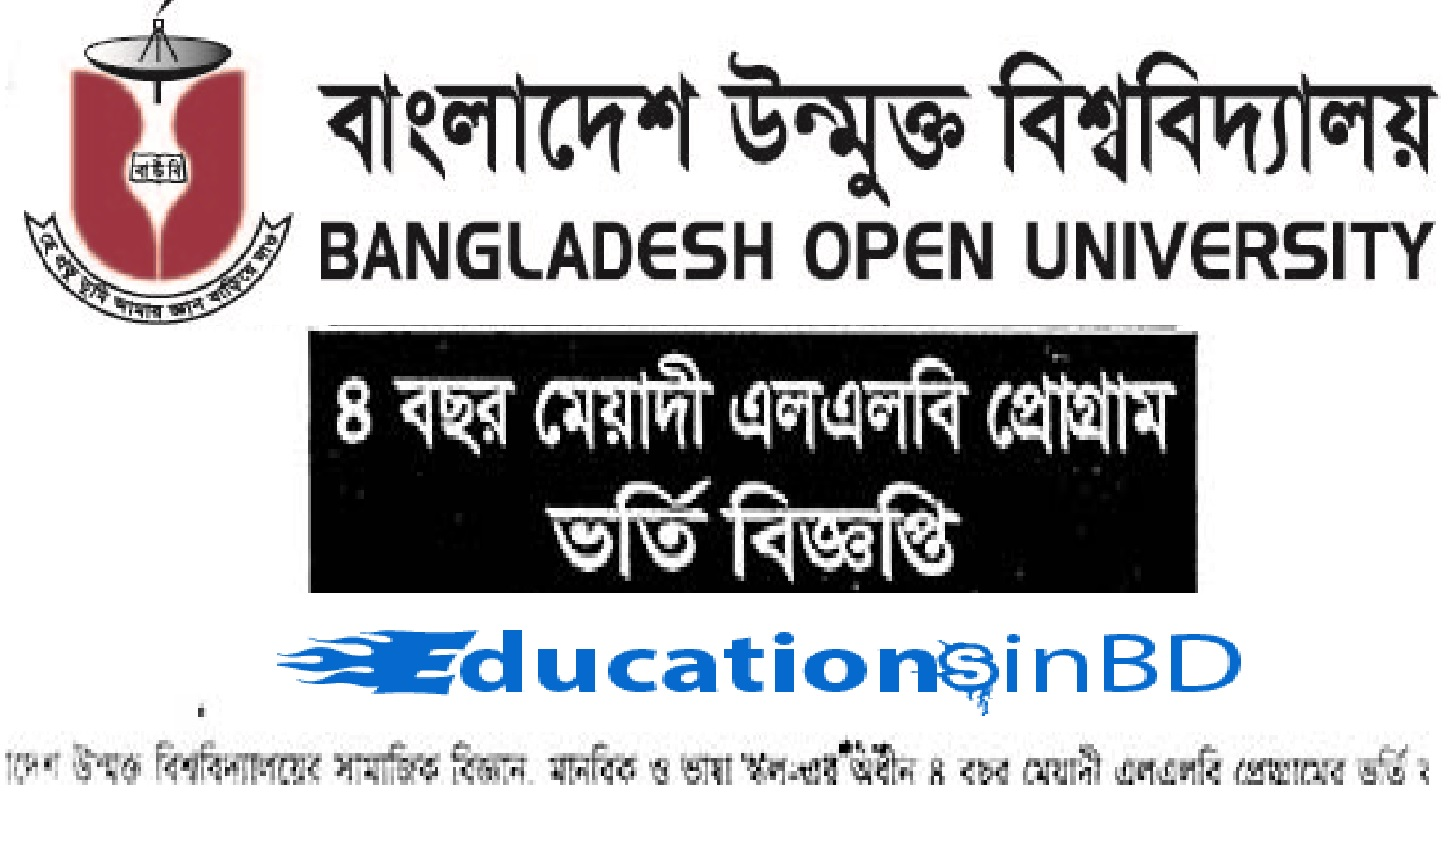 Bangladesh Open University LLB Admission Test Notice Result 2018-19